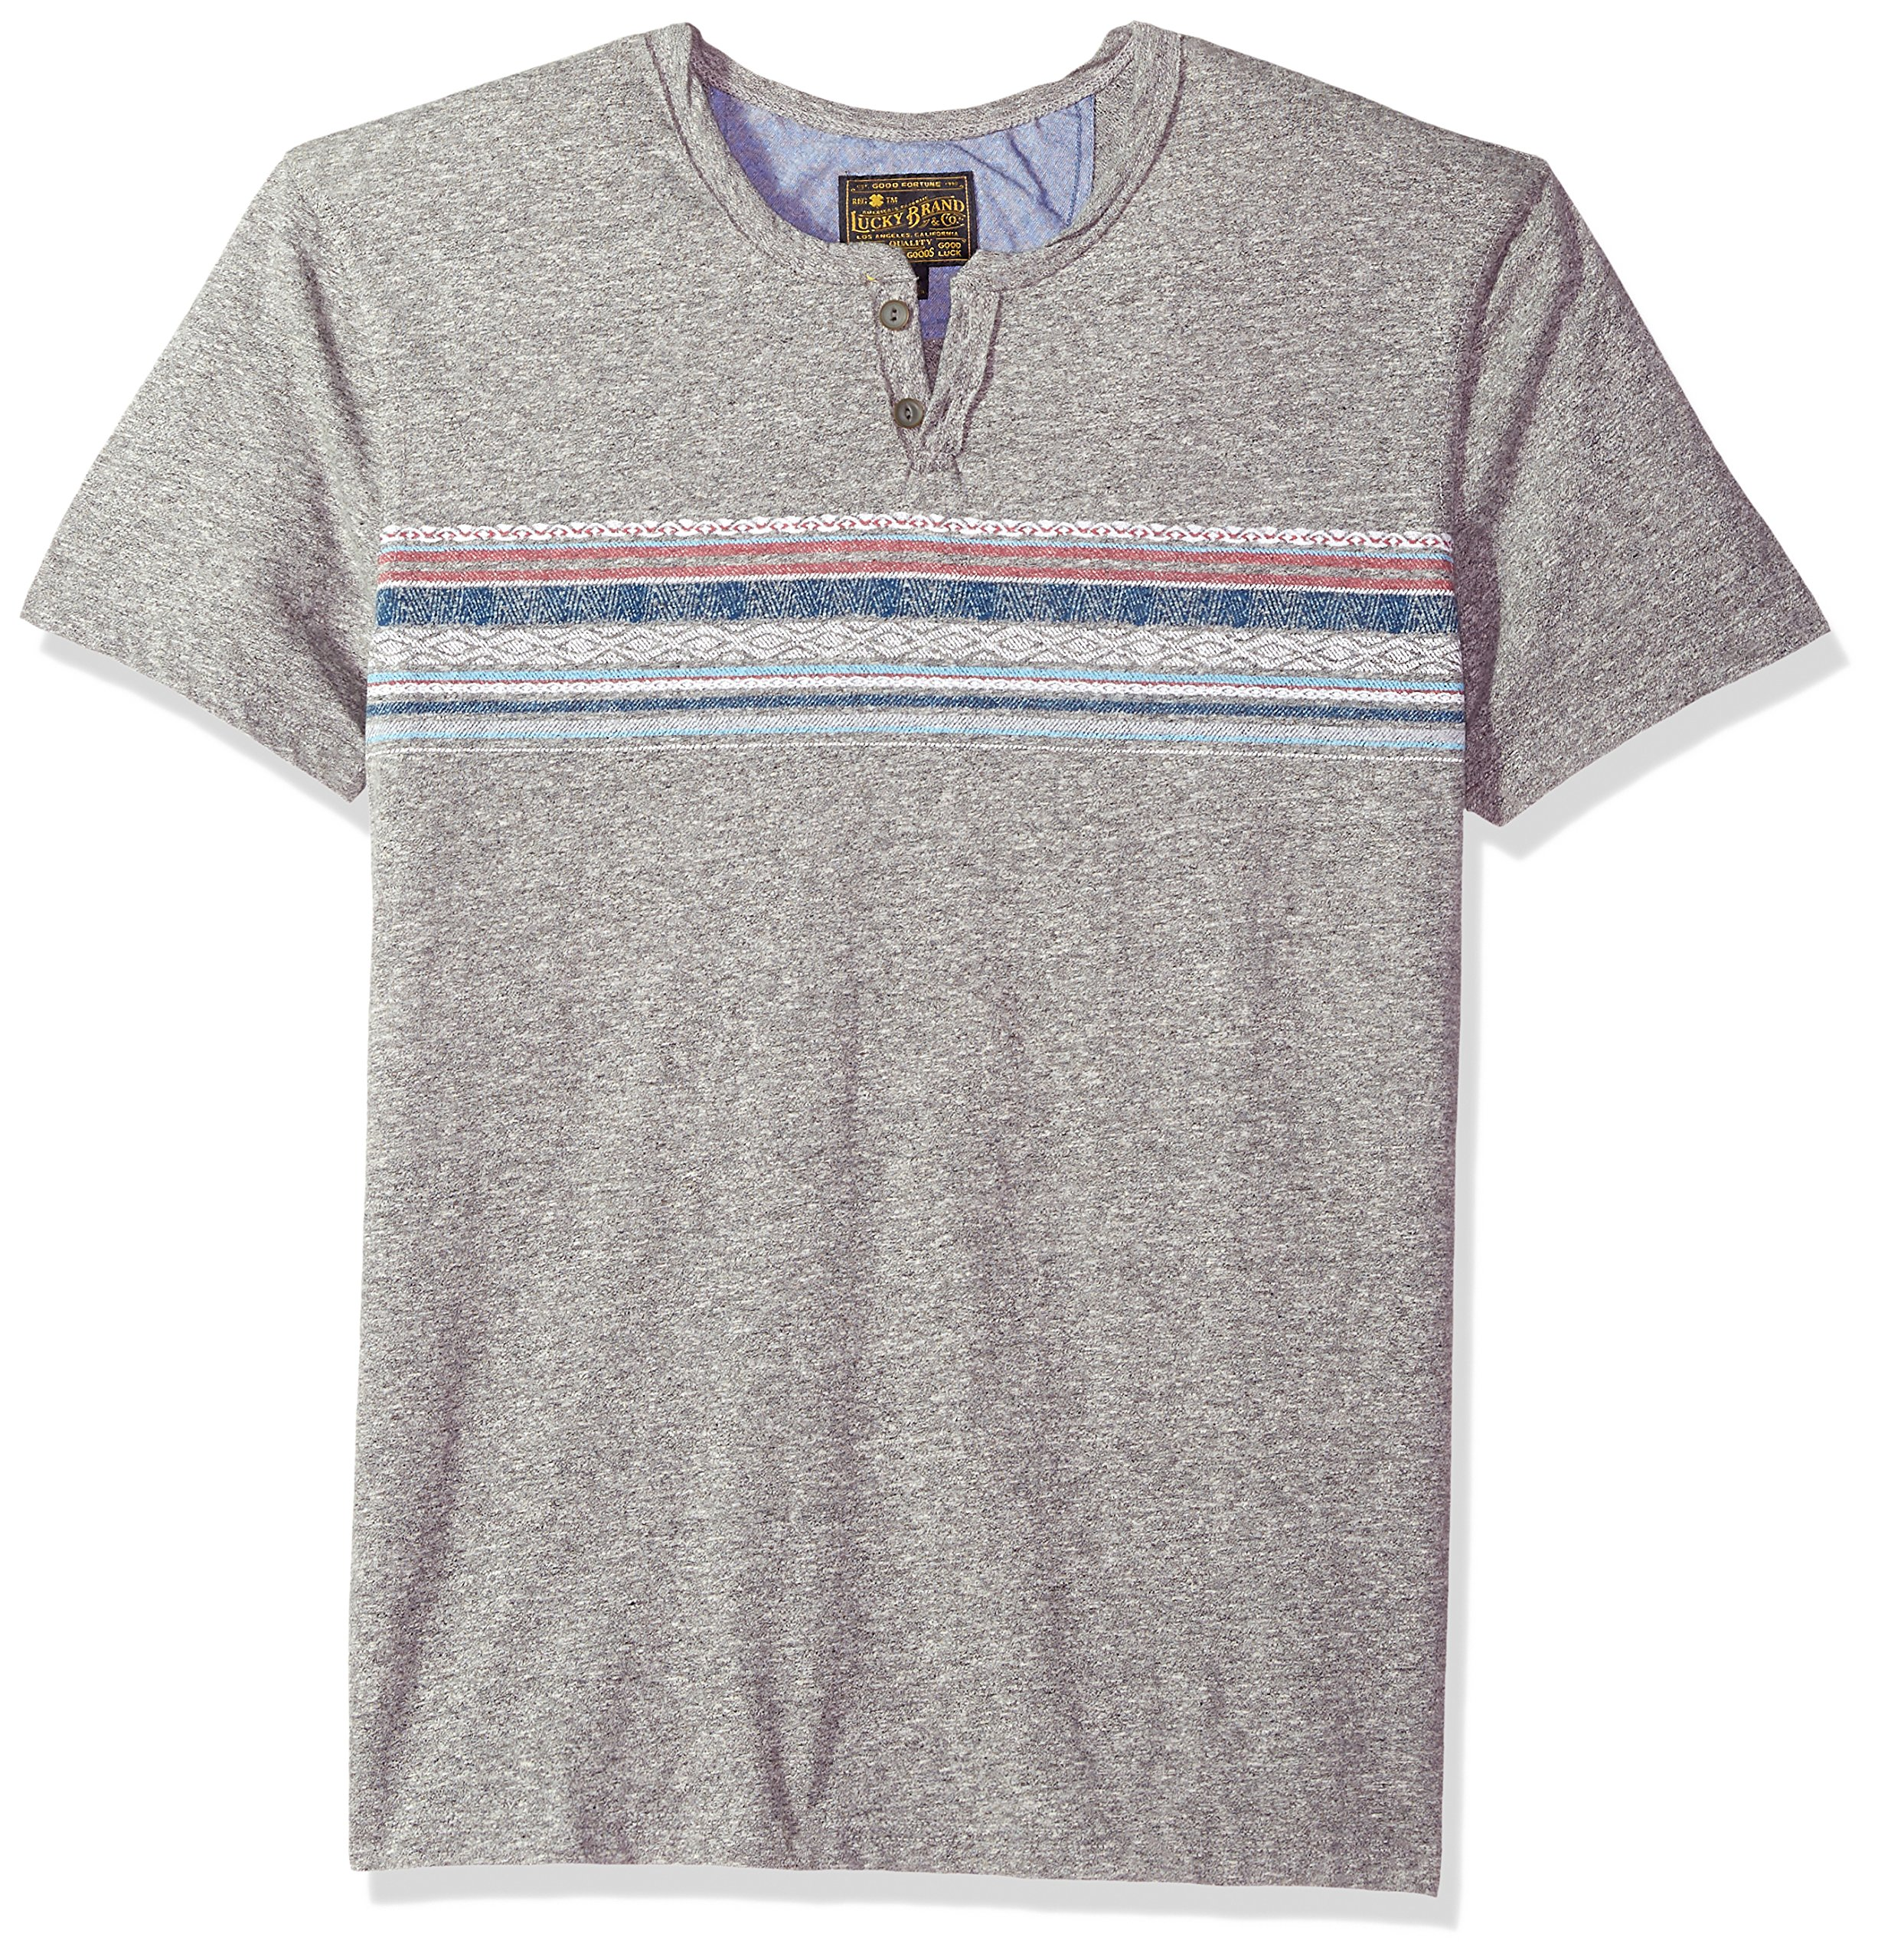 Lucky Brand Men's Button Notch Neck Tee, Heather Grey/Multi, S by Lucky Brand (Image #1)